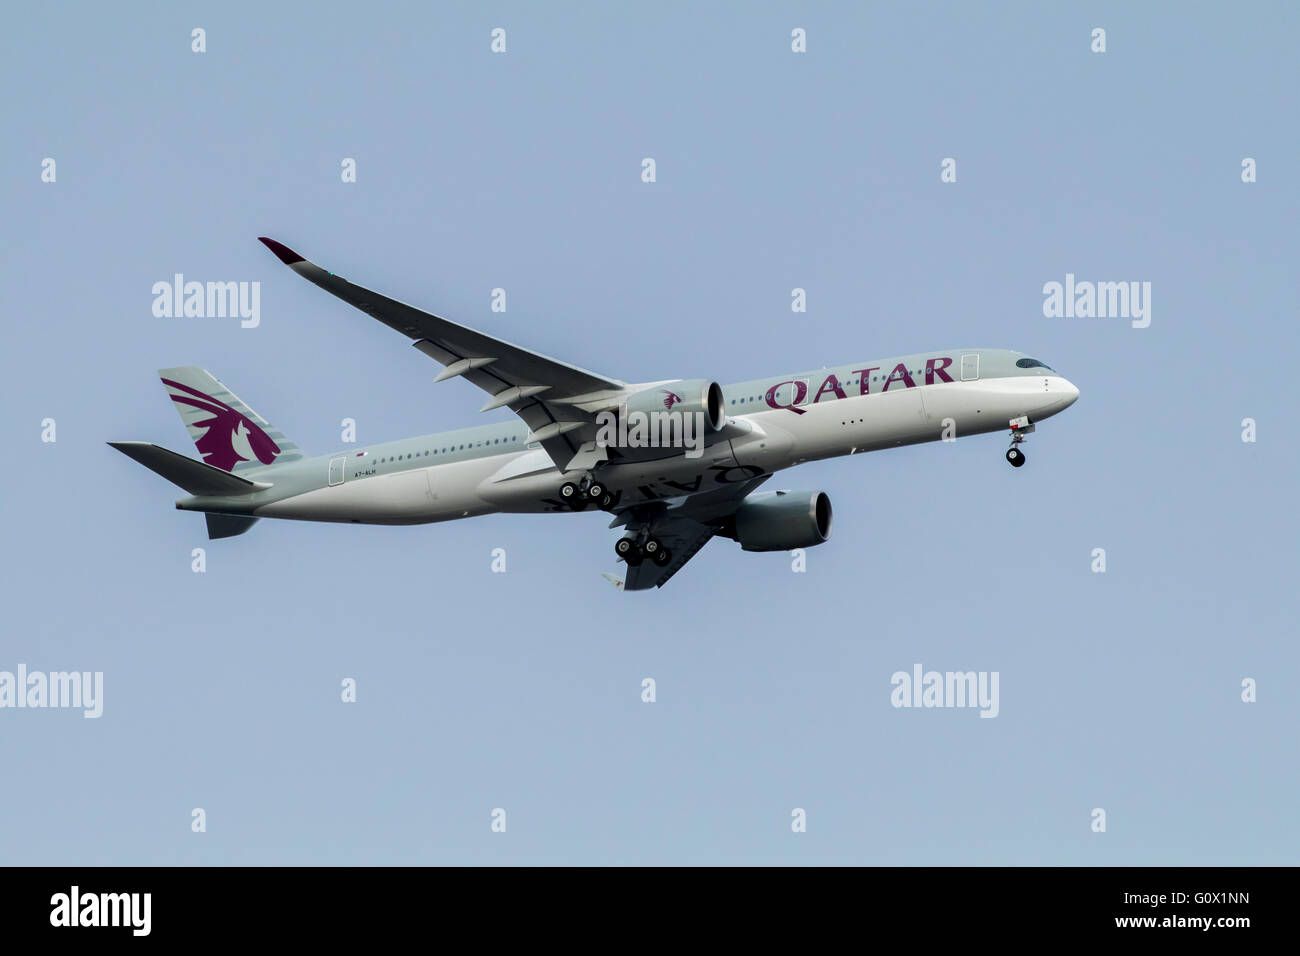 The first flight of Qatar Airways Airbus A350 between Doha and Adelaide lands in Adelaide on Tuesday 3 May 2016. - Stock Image